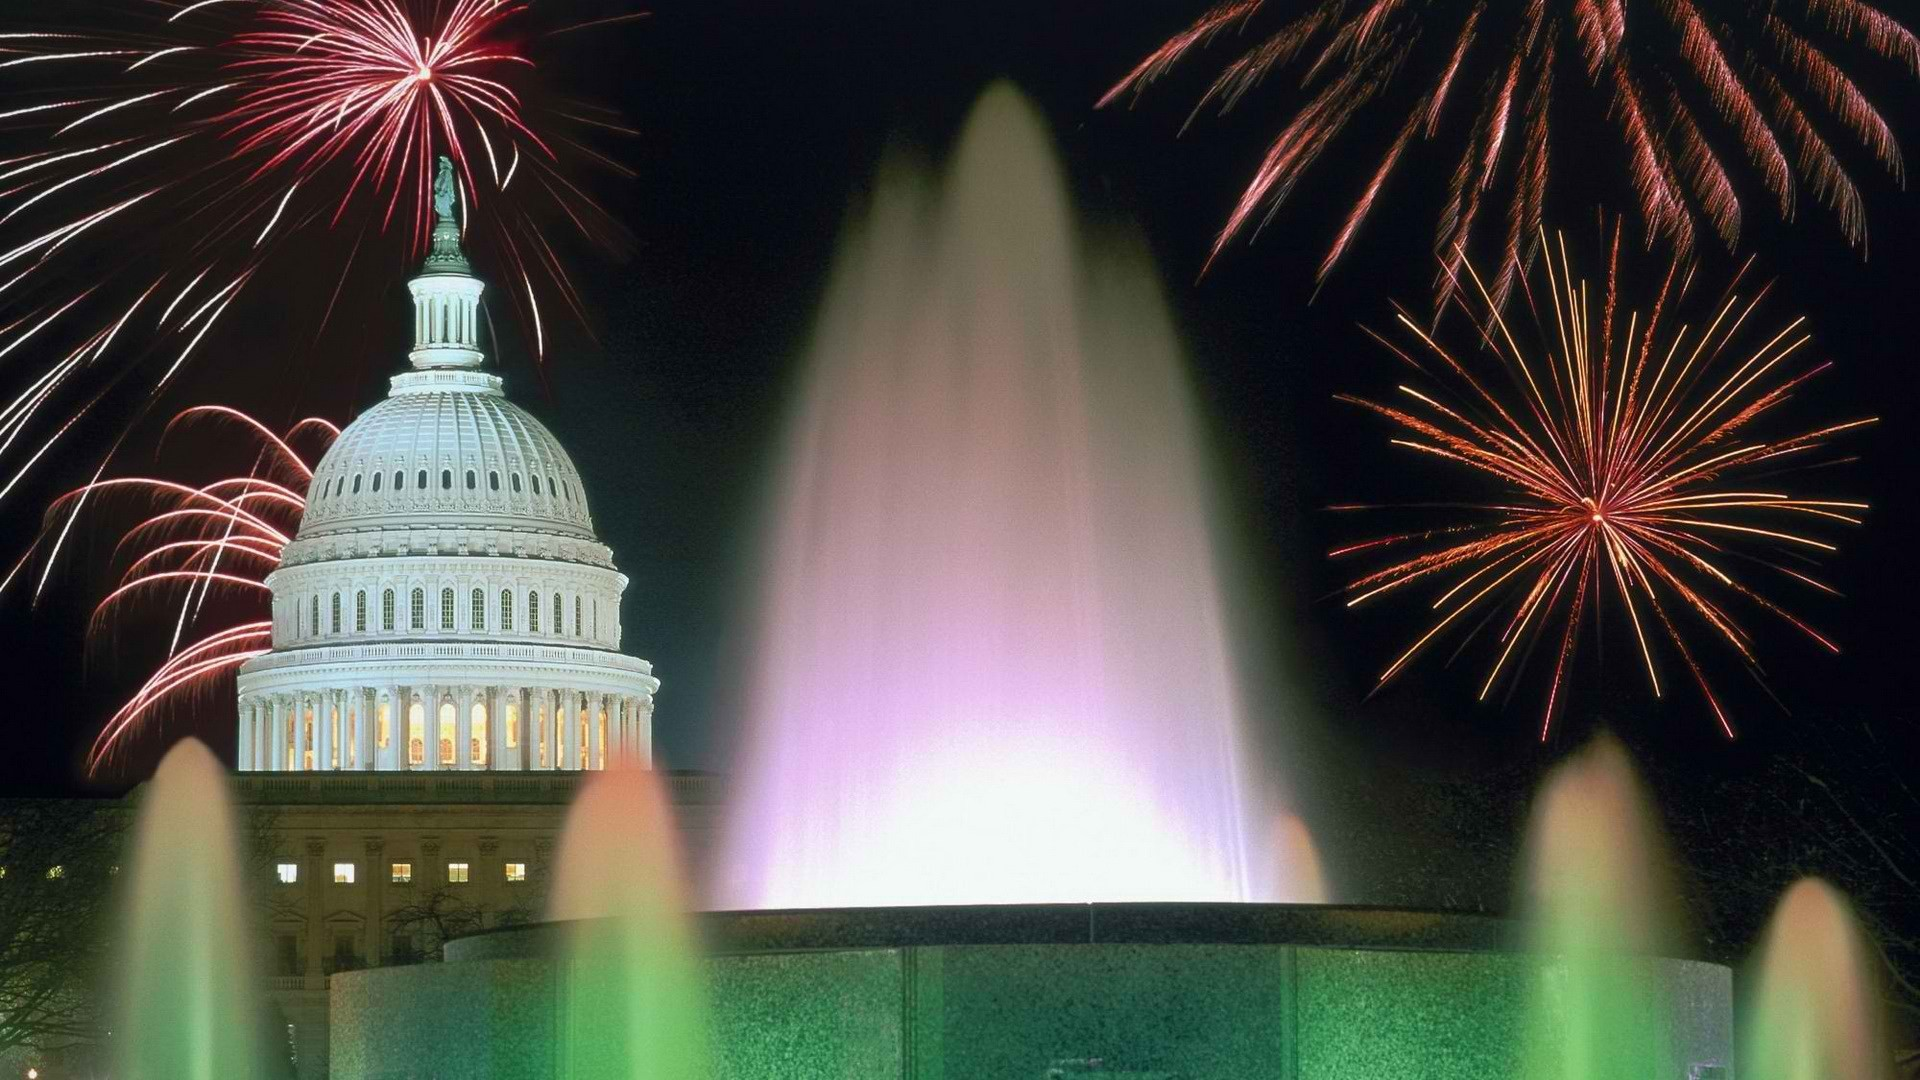 1920x1080 4th of July Fireworks in Washington DC